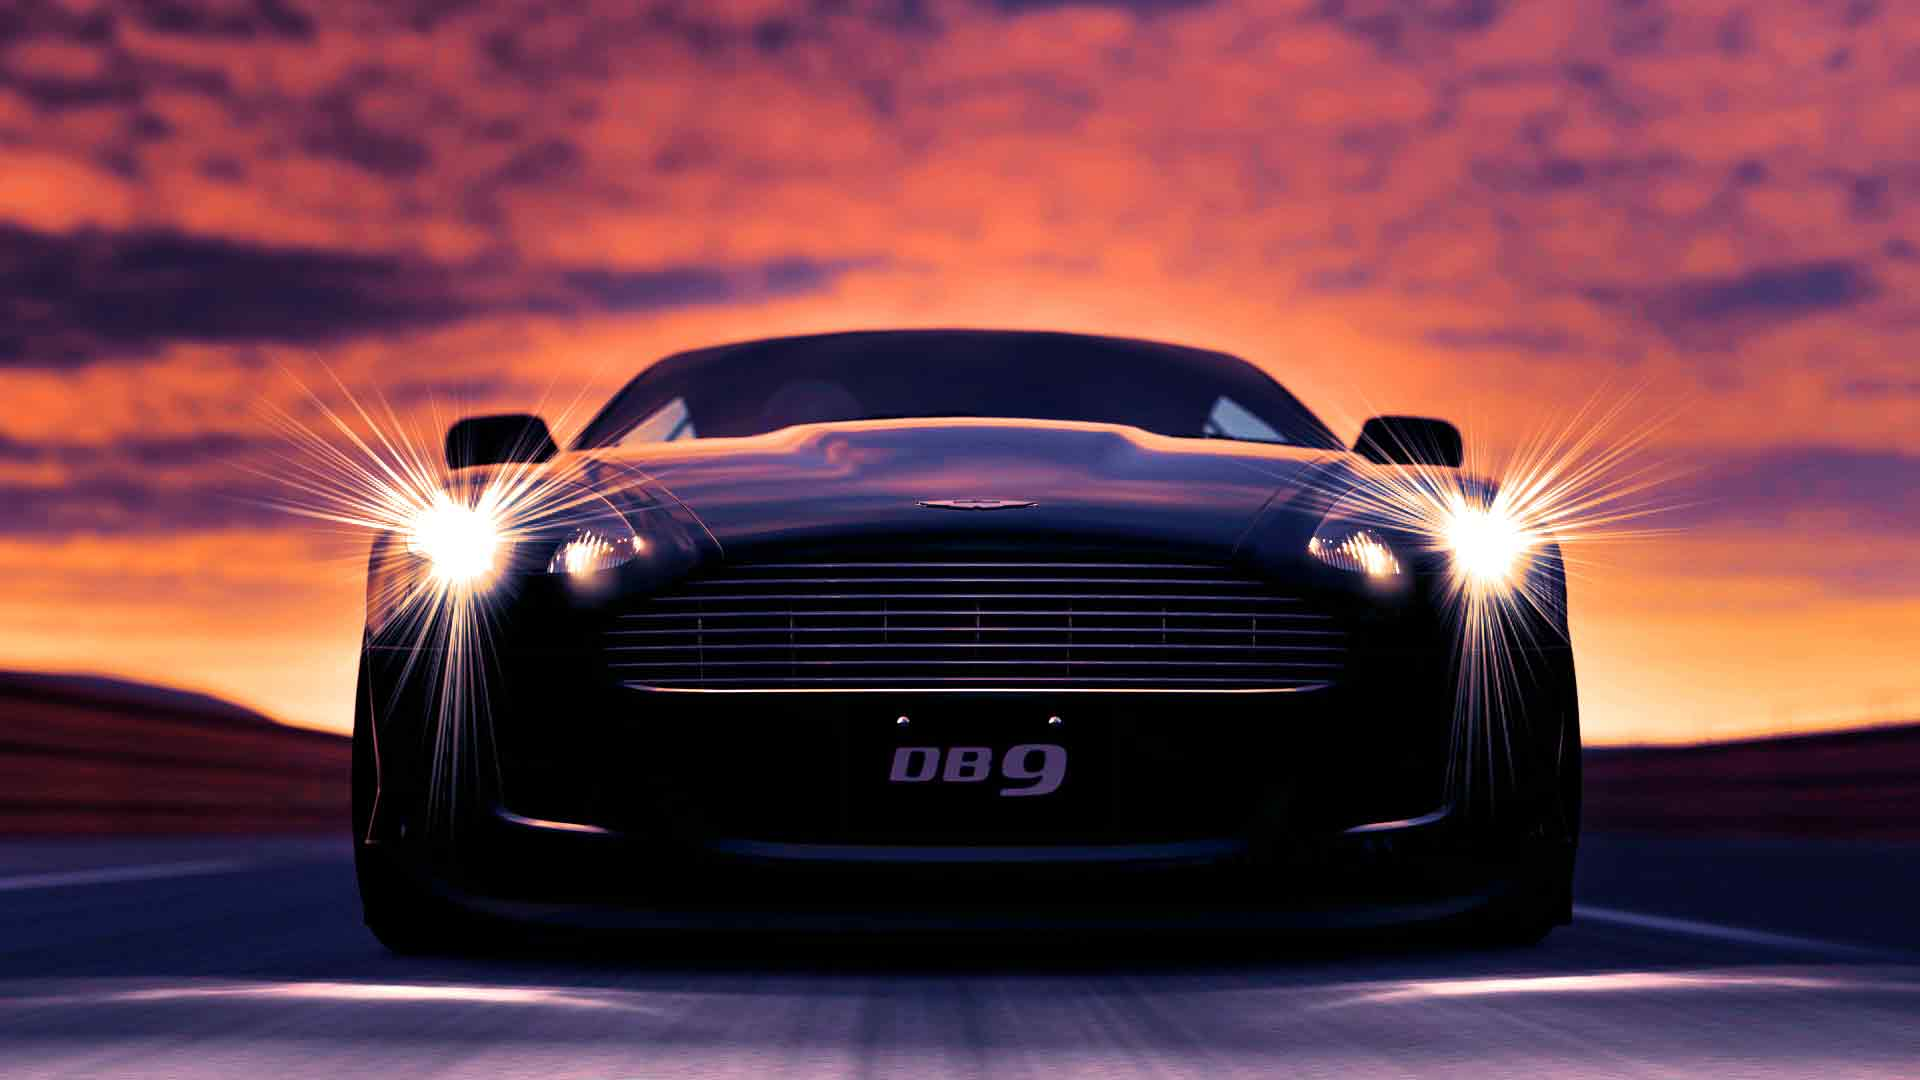 Aston Martin Wallpaper 21